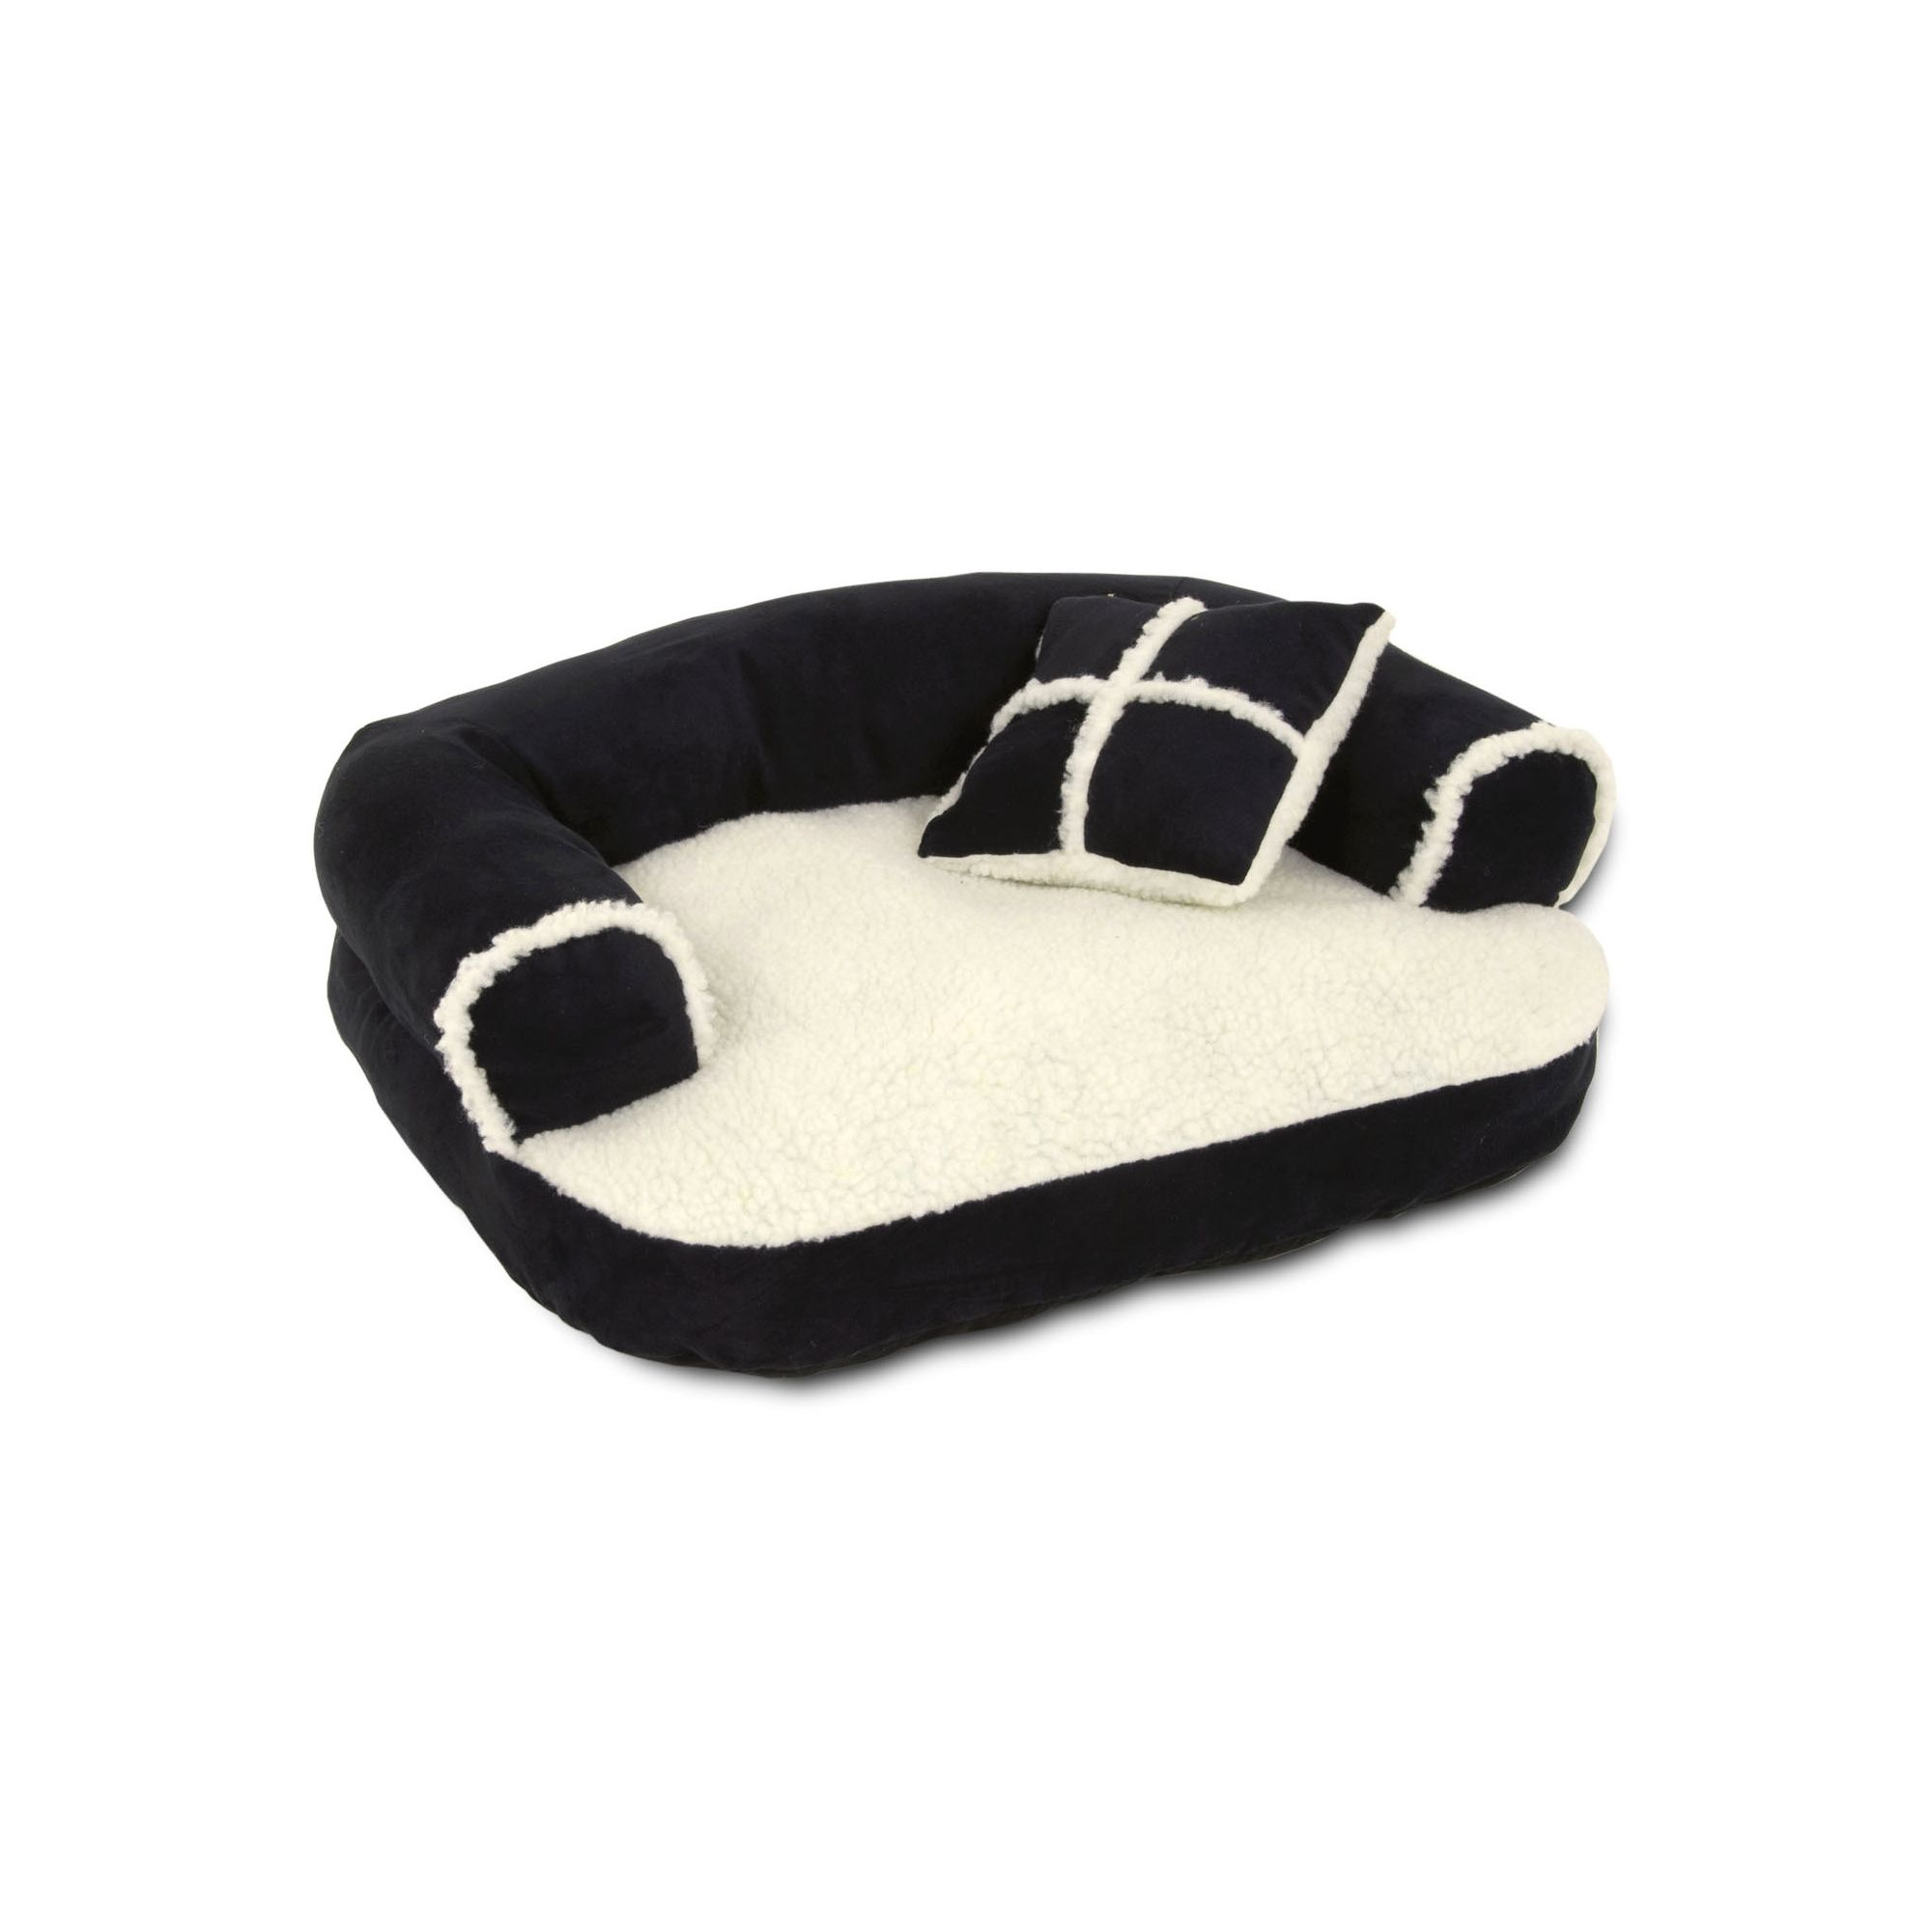 Petmate Dog Sofa Bed with Bonus Pillow